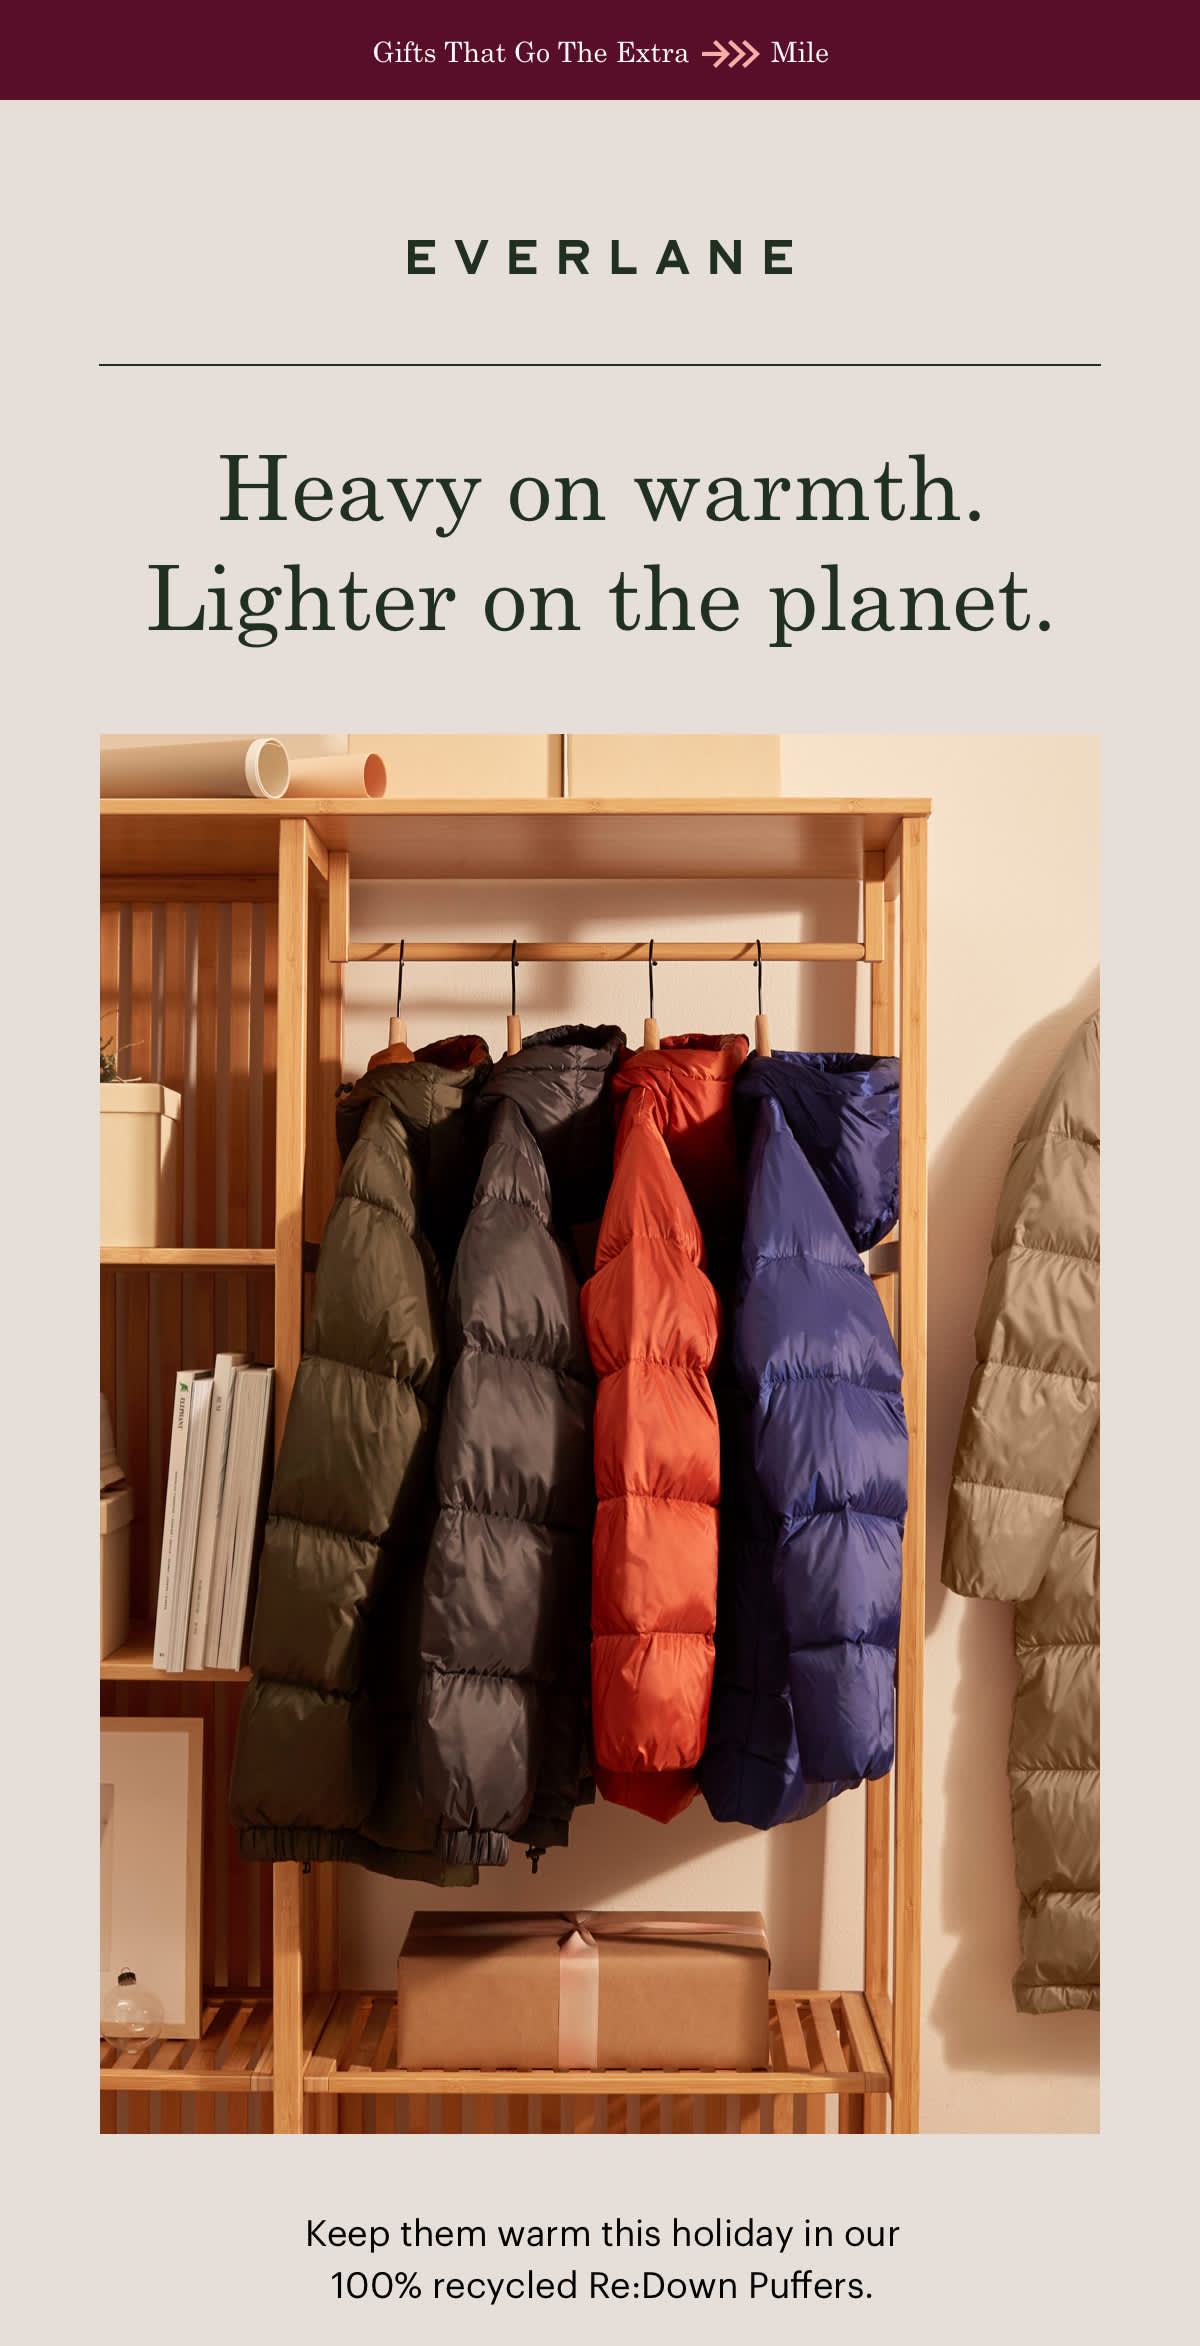 Heavy on warmth. Lighter on the planet.